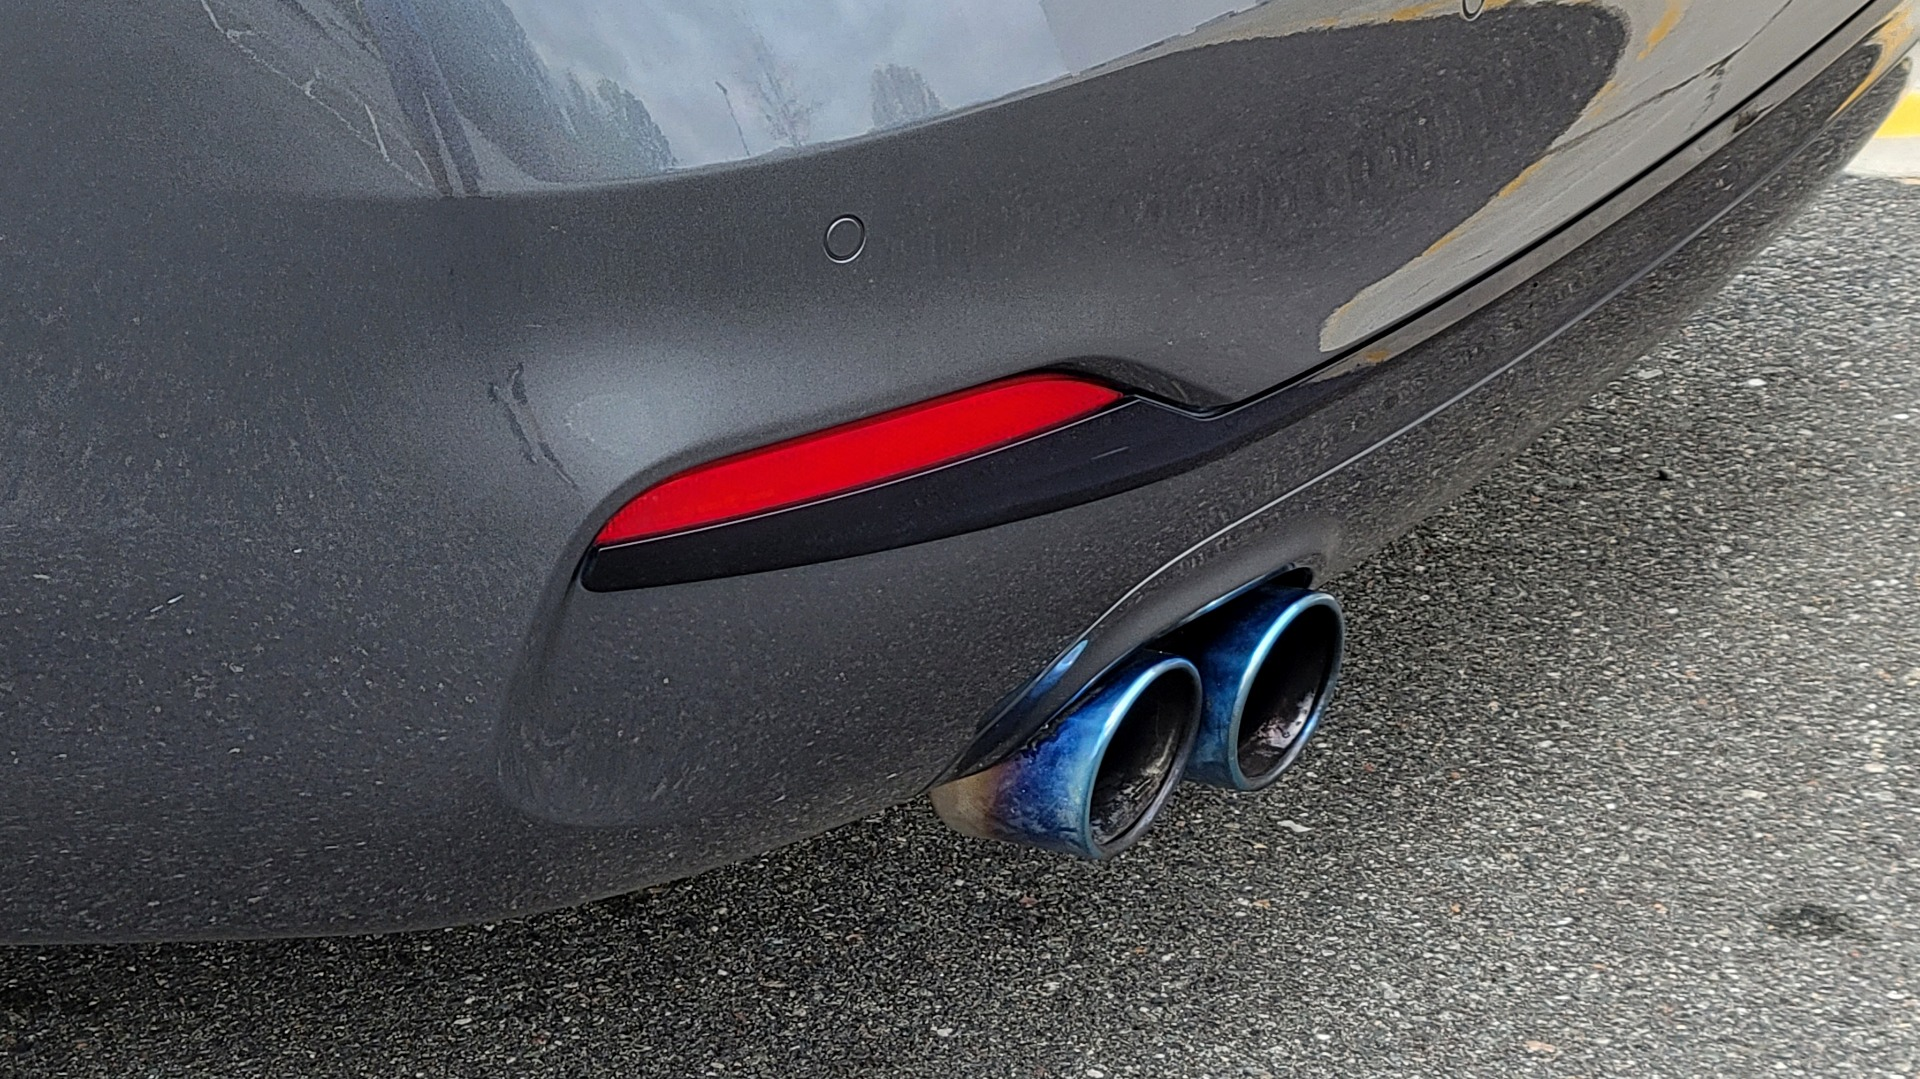 Used 2019 BMW 4 SERIES 430I COUPE 2.0L / RWD / DRVR ASST / CONV PKG / SUNROOF / REARVIEW for sale $32,295 at Formula Imports in Charlotte NC 28227 5